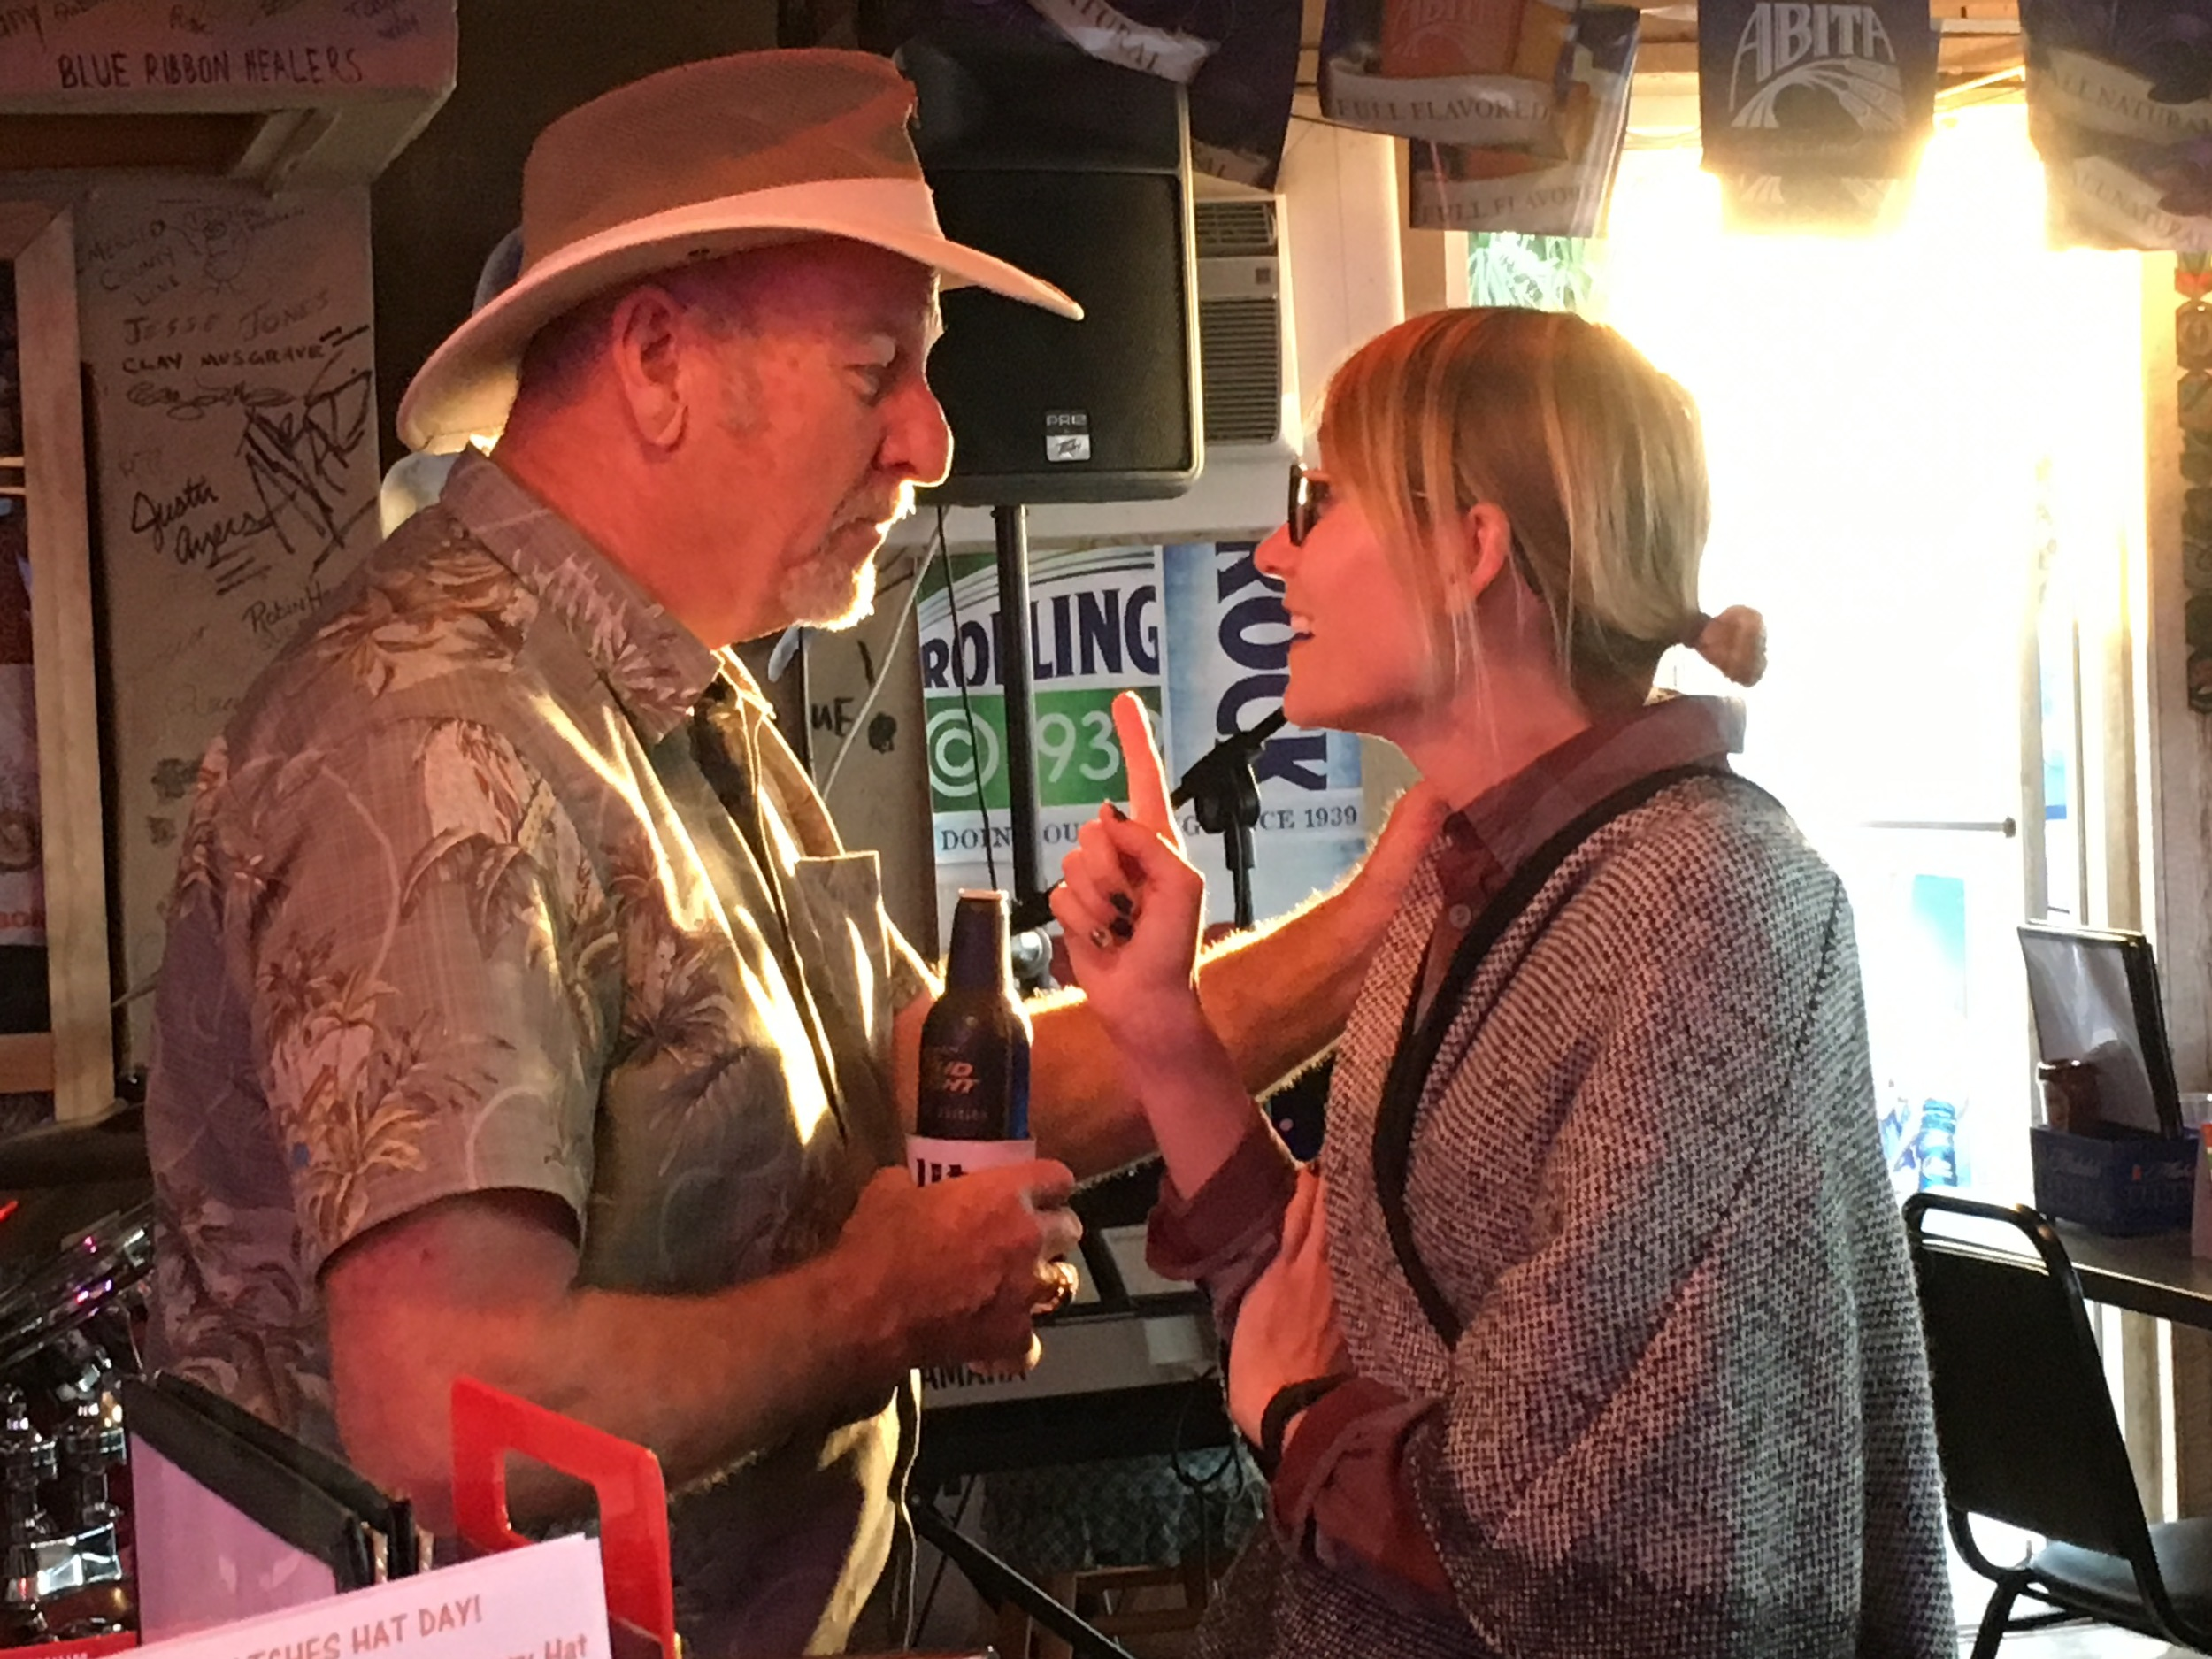 Mel chatting with the Merle Haggard band leader.